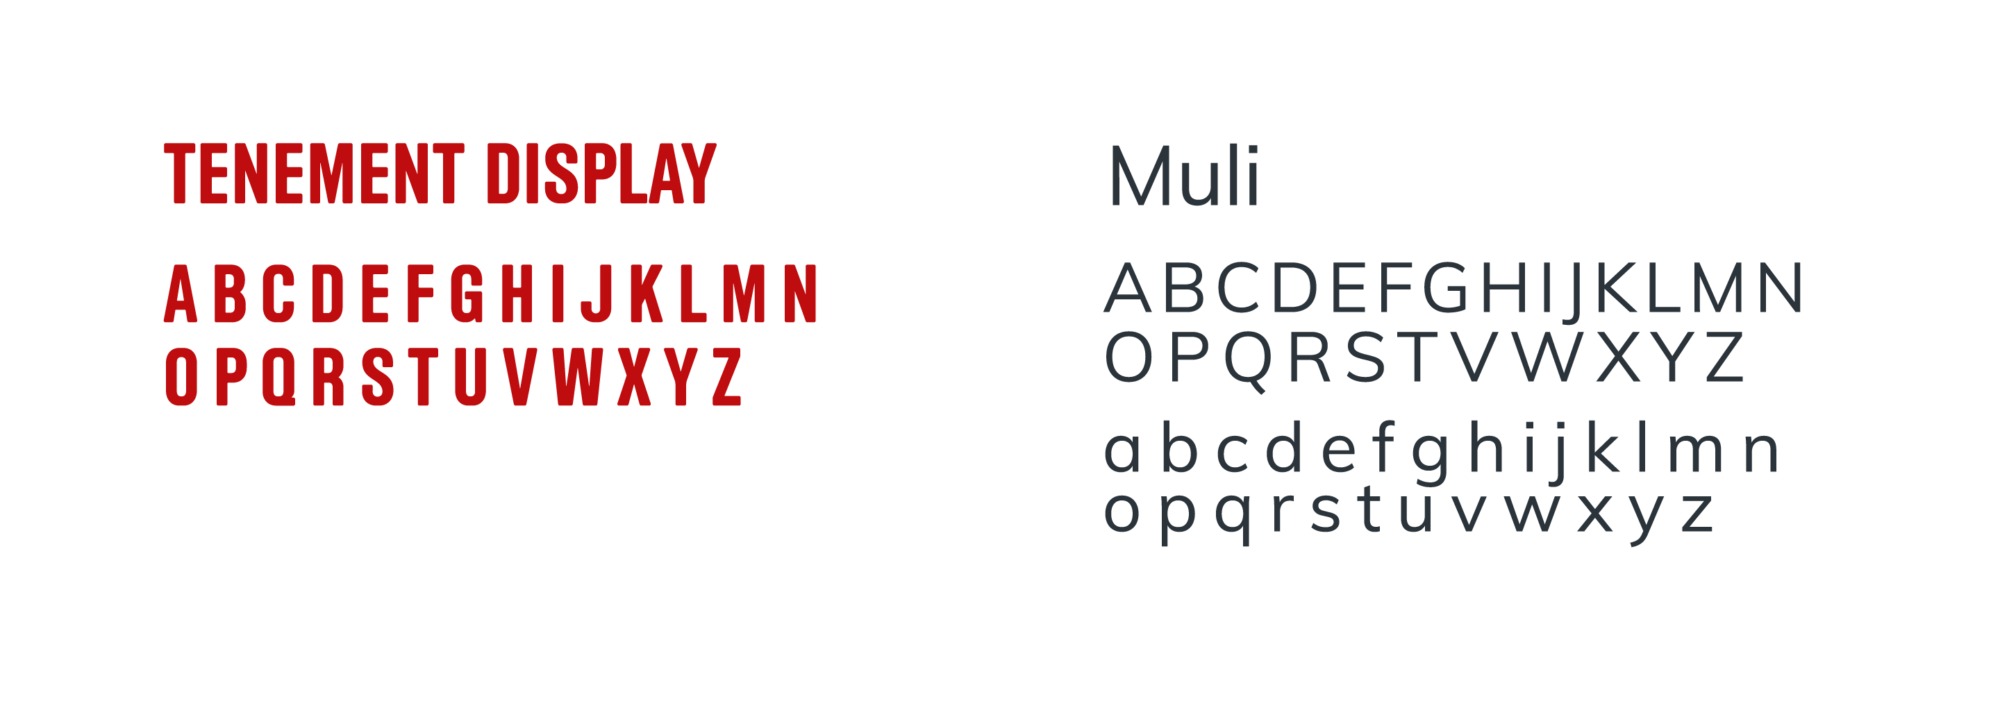 Typography choices (Tenement Display and Muli) for the Tenement Museum's website redesign